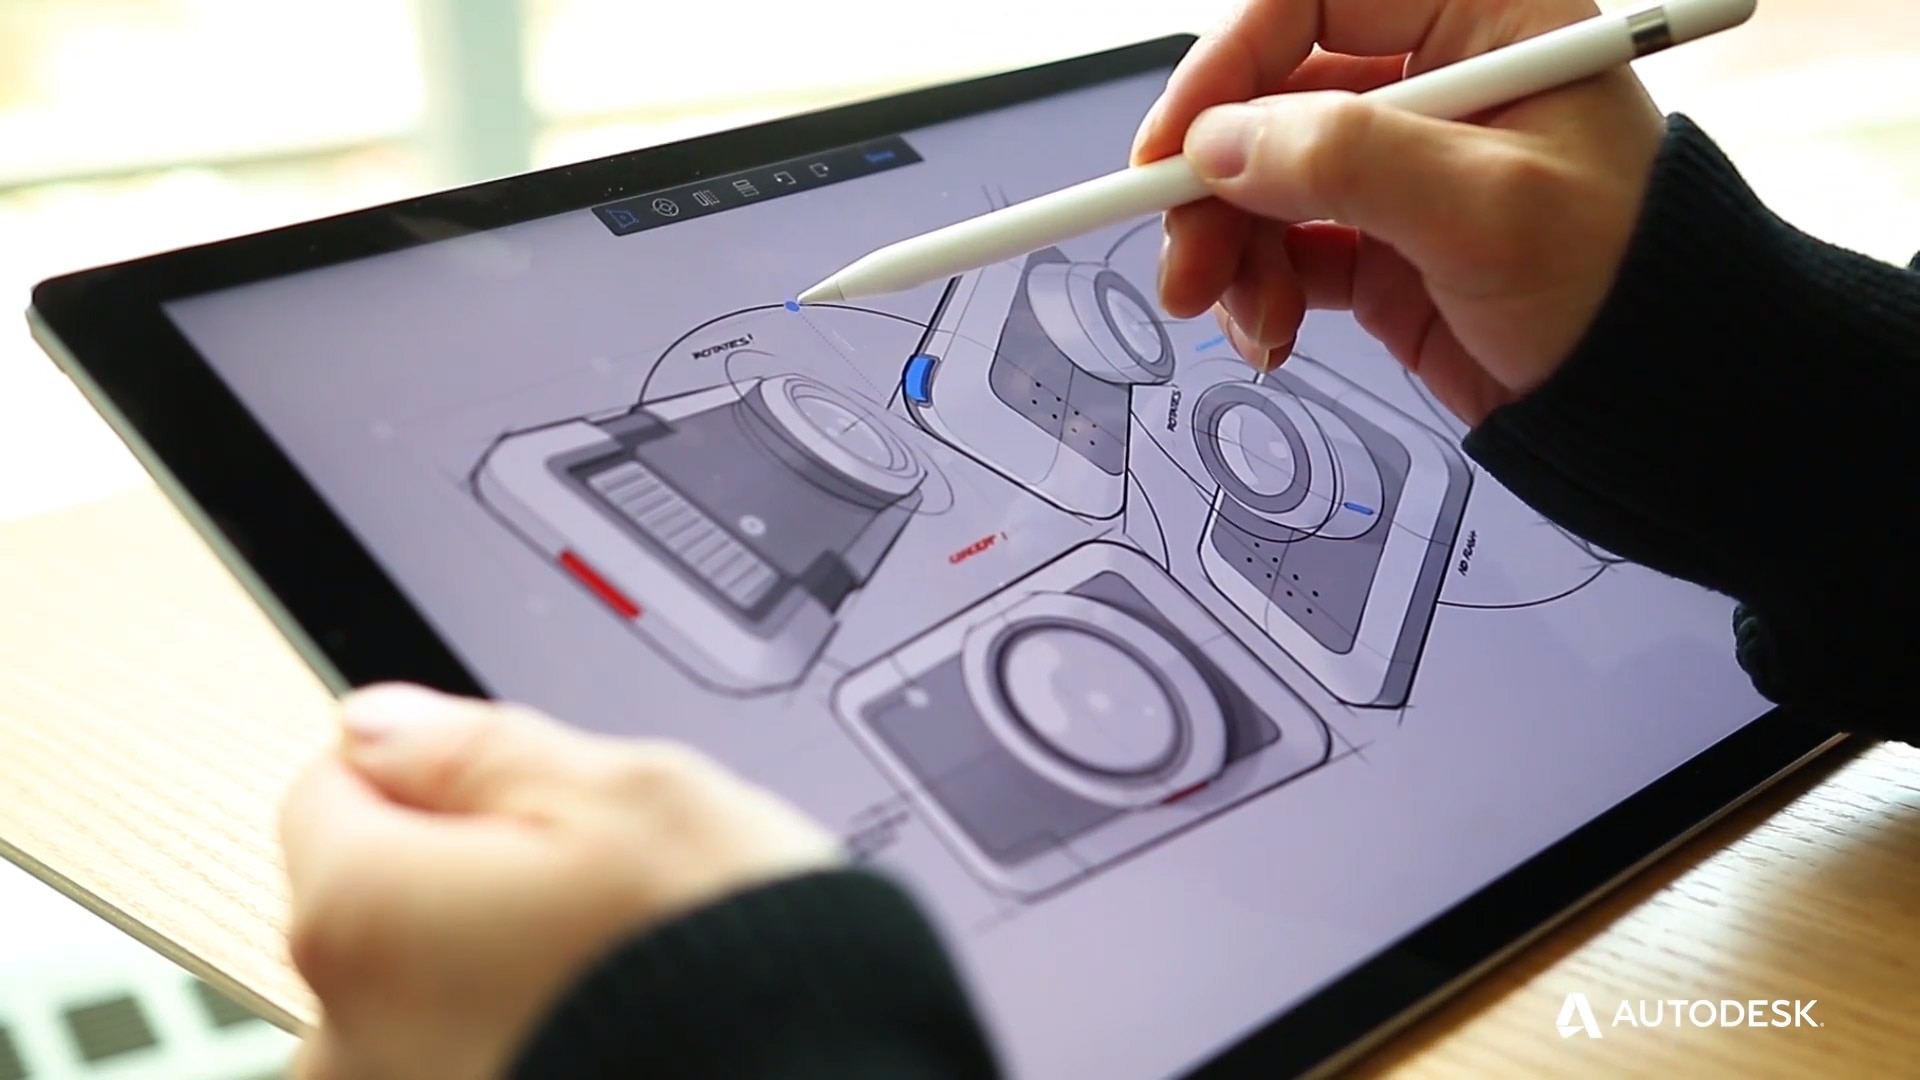 autodesk sketchbook manual pdf